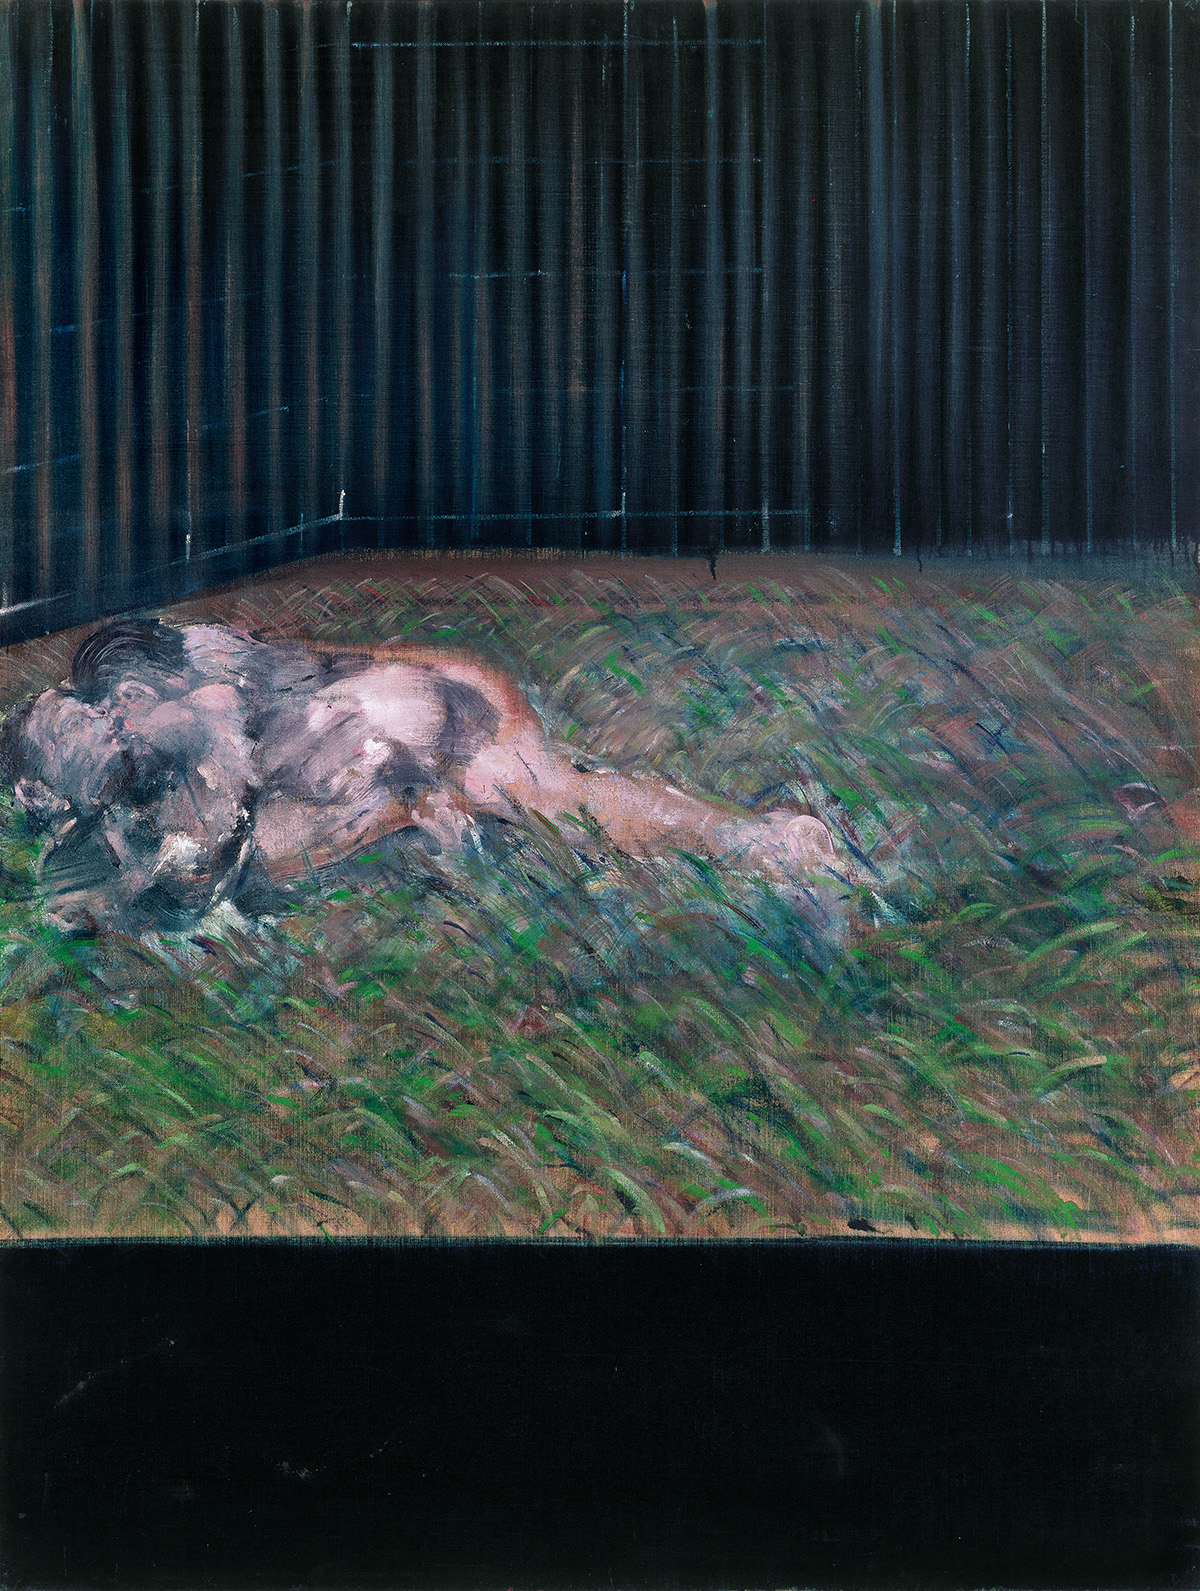 Francis Bacon, Two Figures in the Grass, 1954. Oil on canvas. CR number 54-01. © The Estate of Francis Bacon / DACS London 2020. All rights reserved.